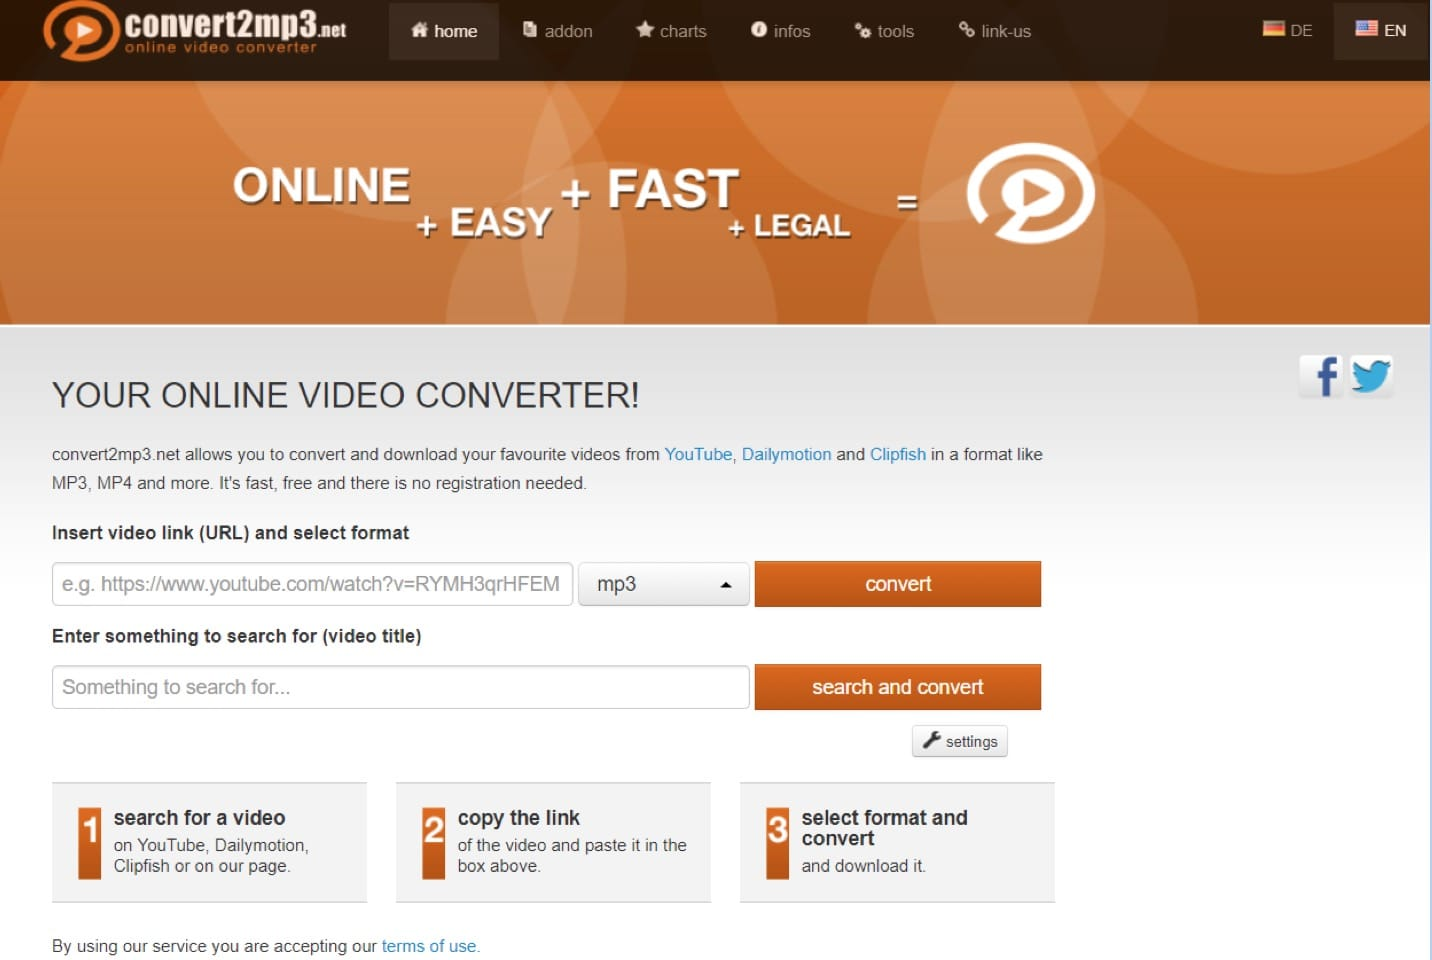 YouTube music converter - Convert YouTube to MP3 Quickly